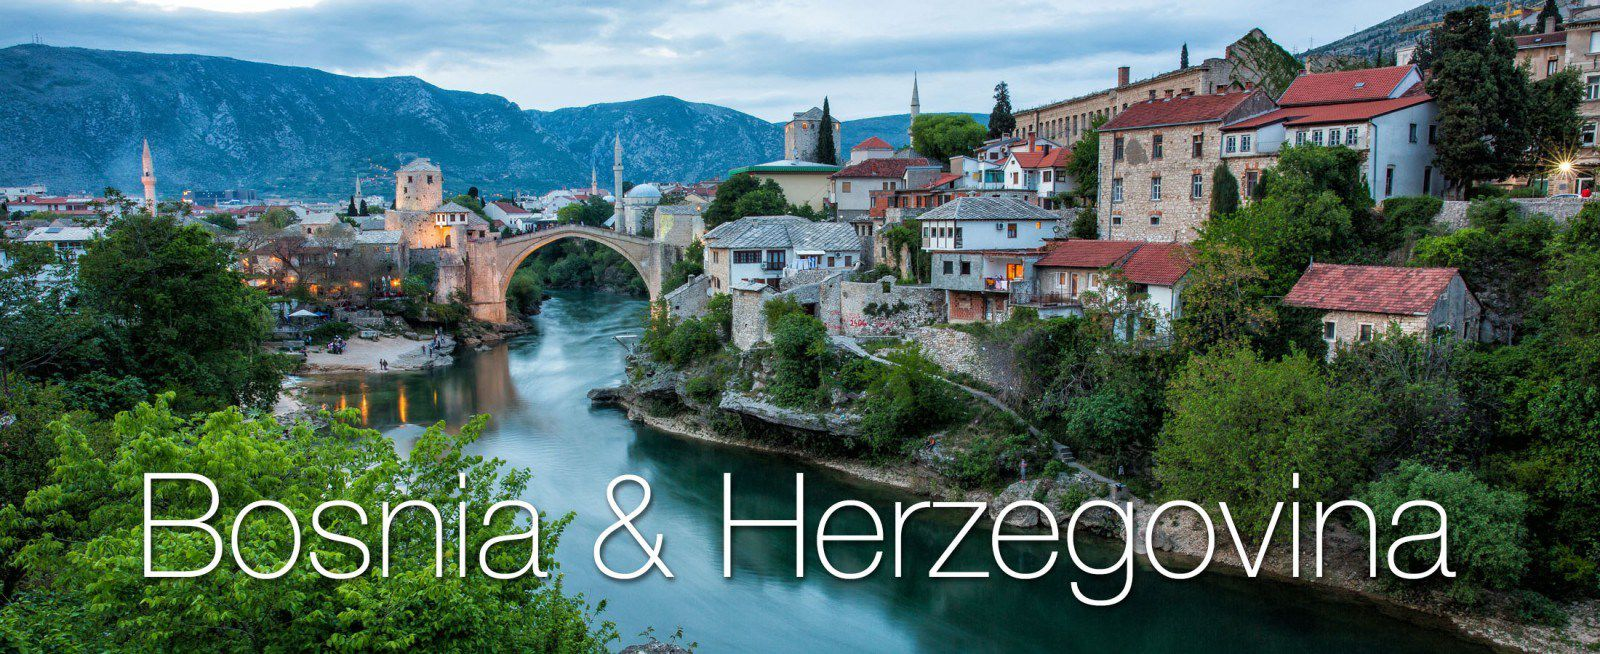 Destination Bosnia Herzegovina